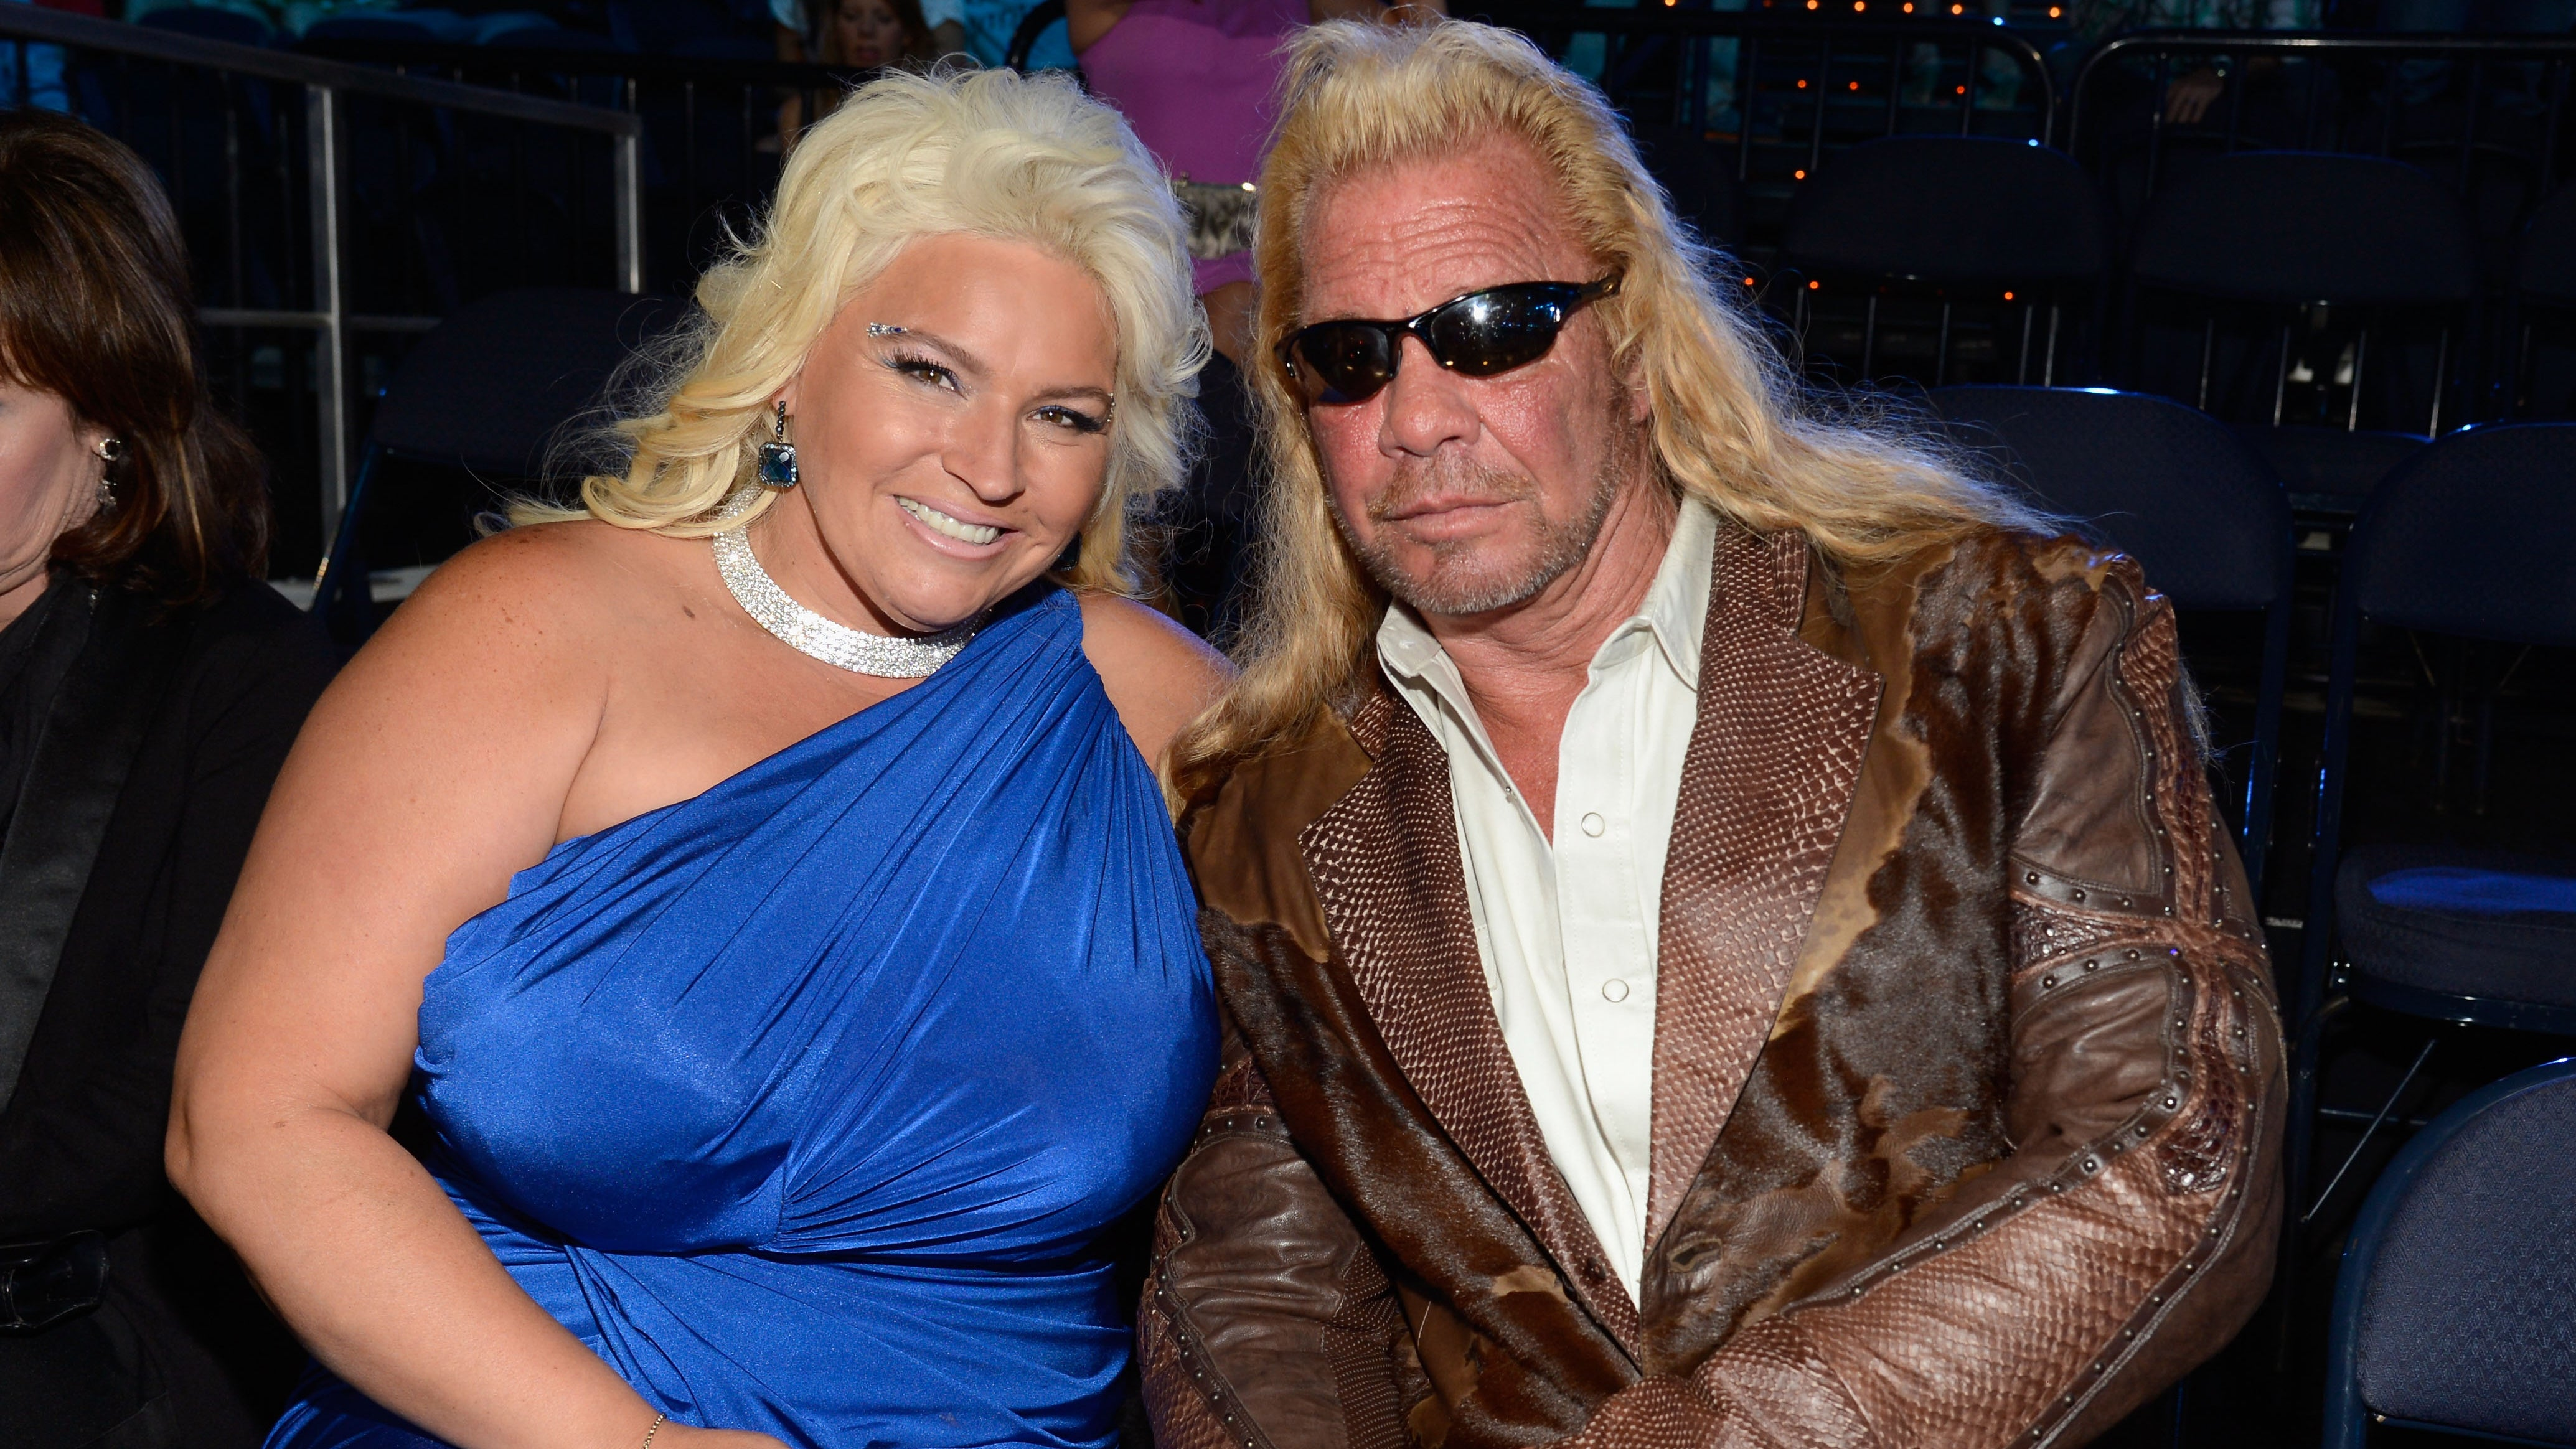 Dog the Bounty Hunter Says He's Lost 17 Pounds in 2 Weeks